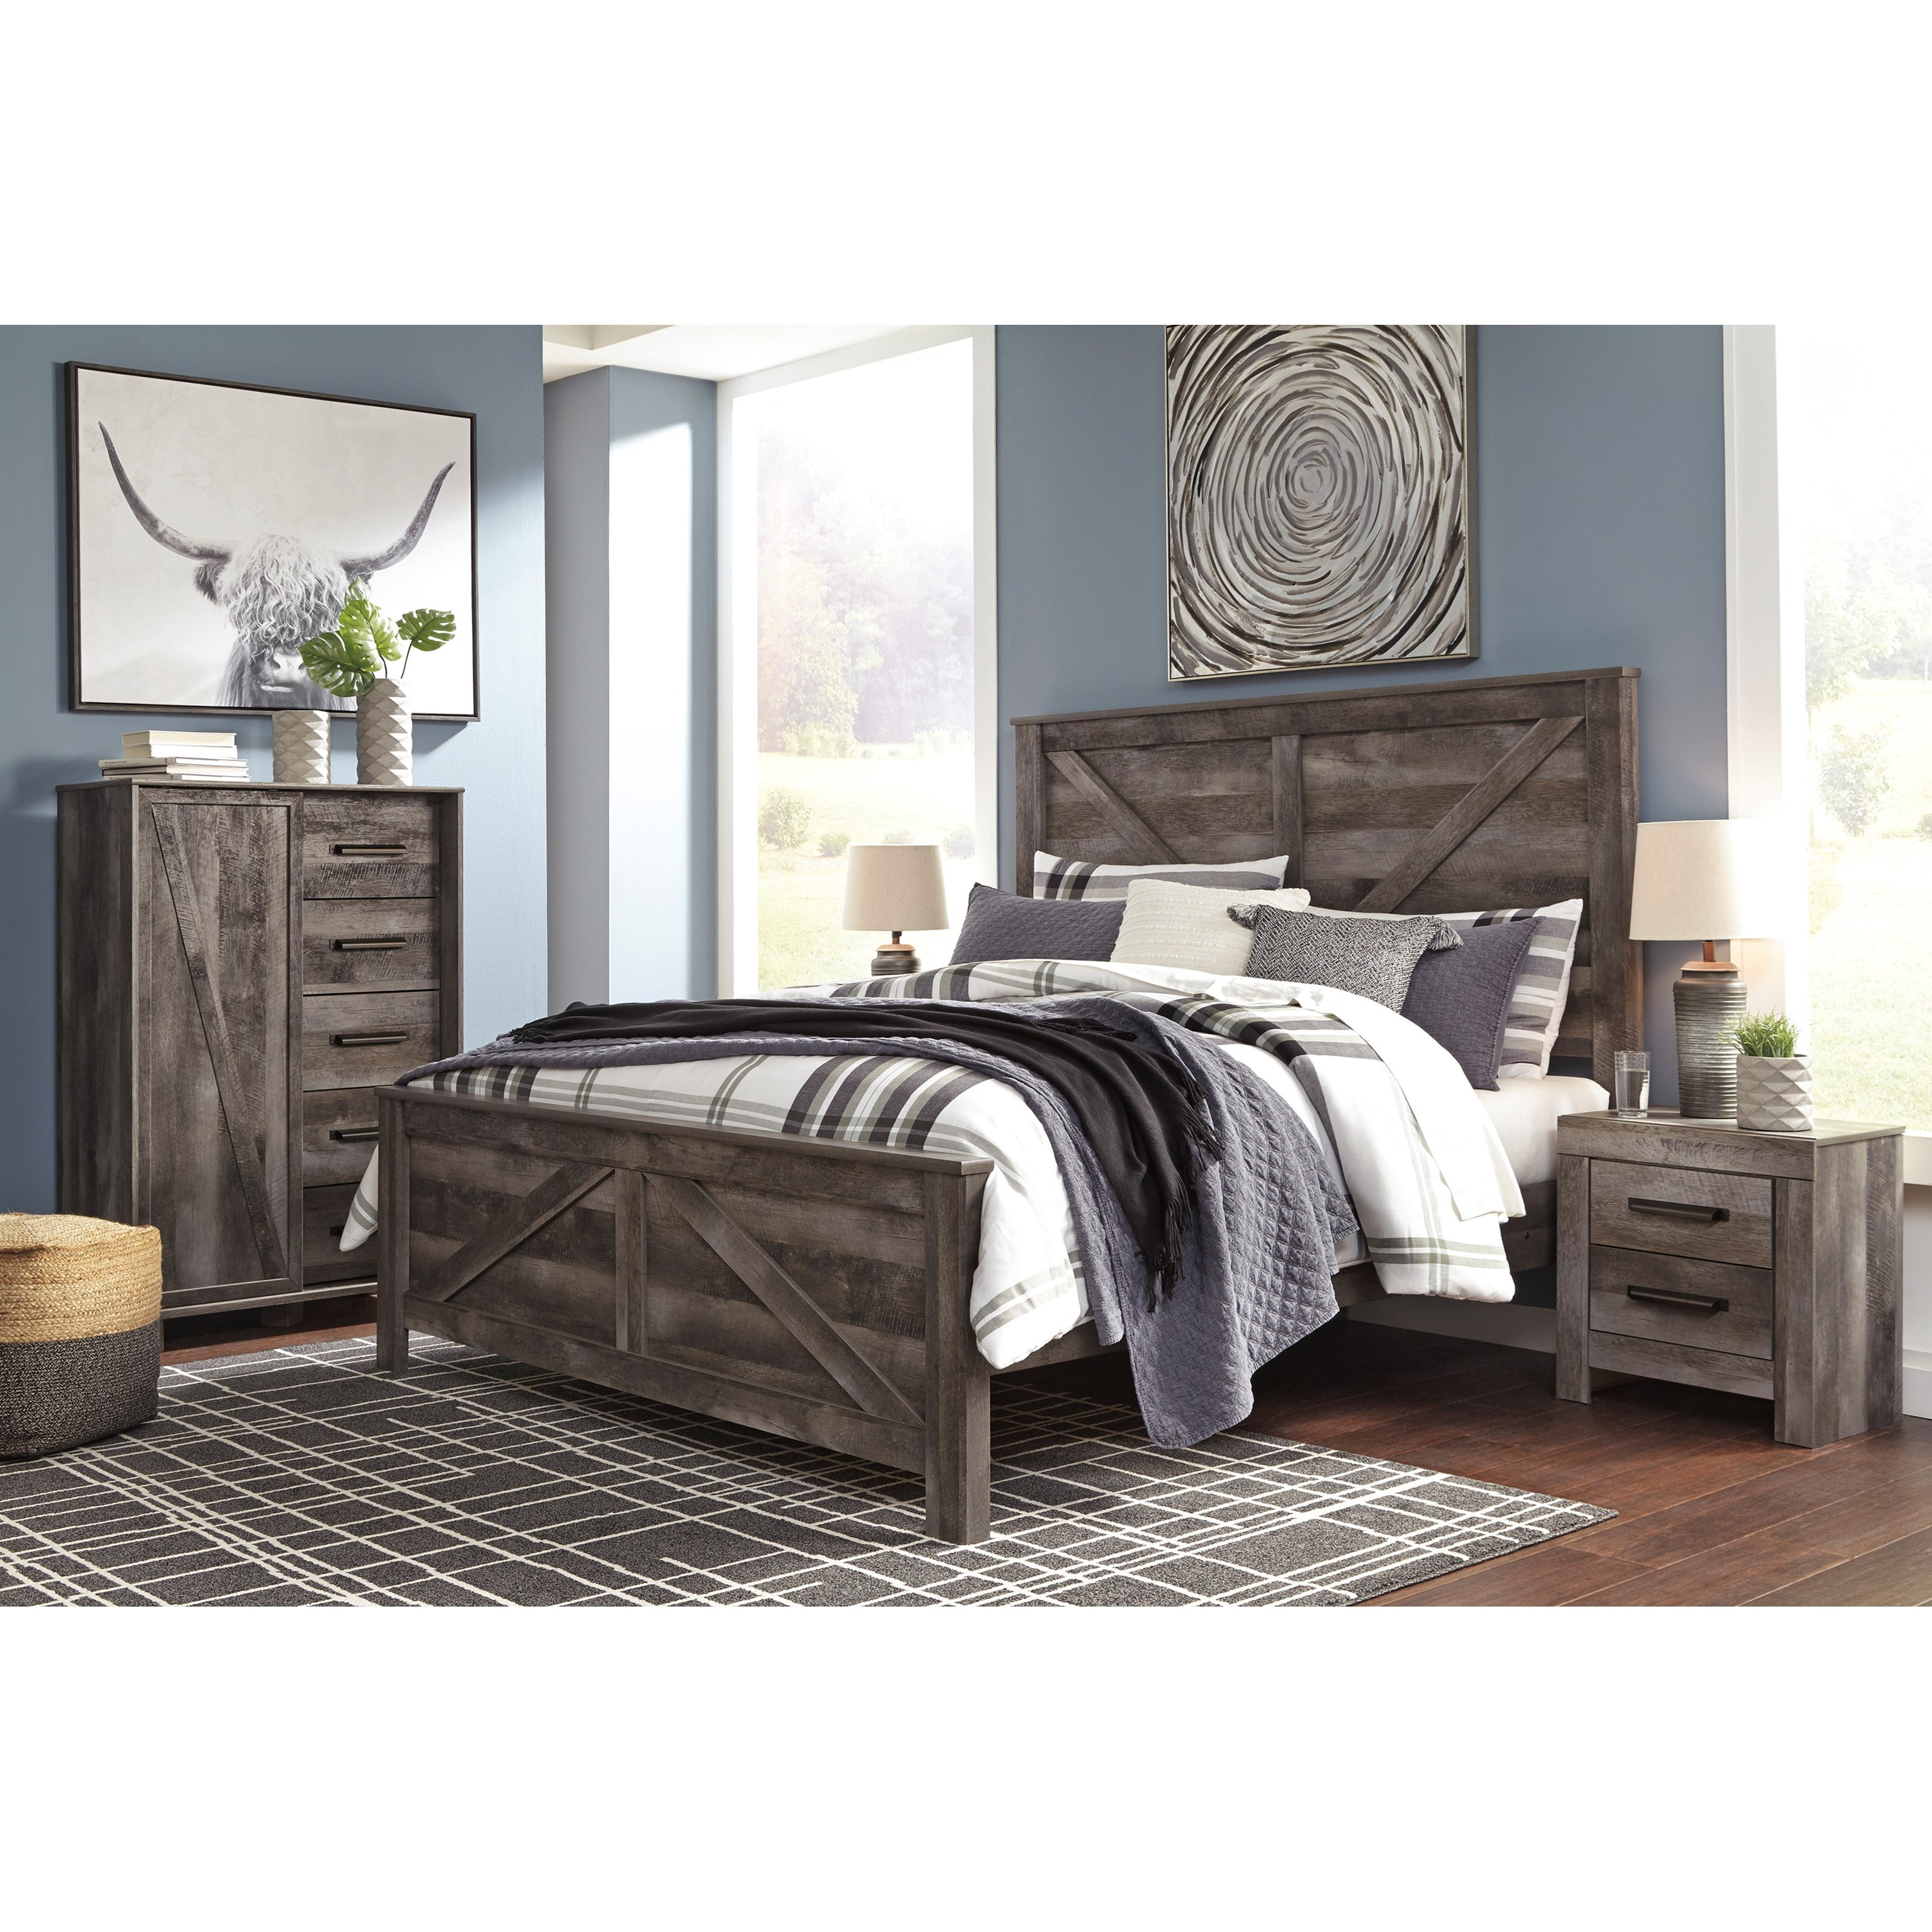 Signature Design By Ashley Willowton Queen Bedroom Group: Signature Design By Ashley Wynnlow King Bedroom Group